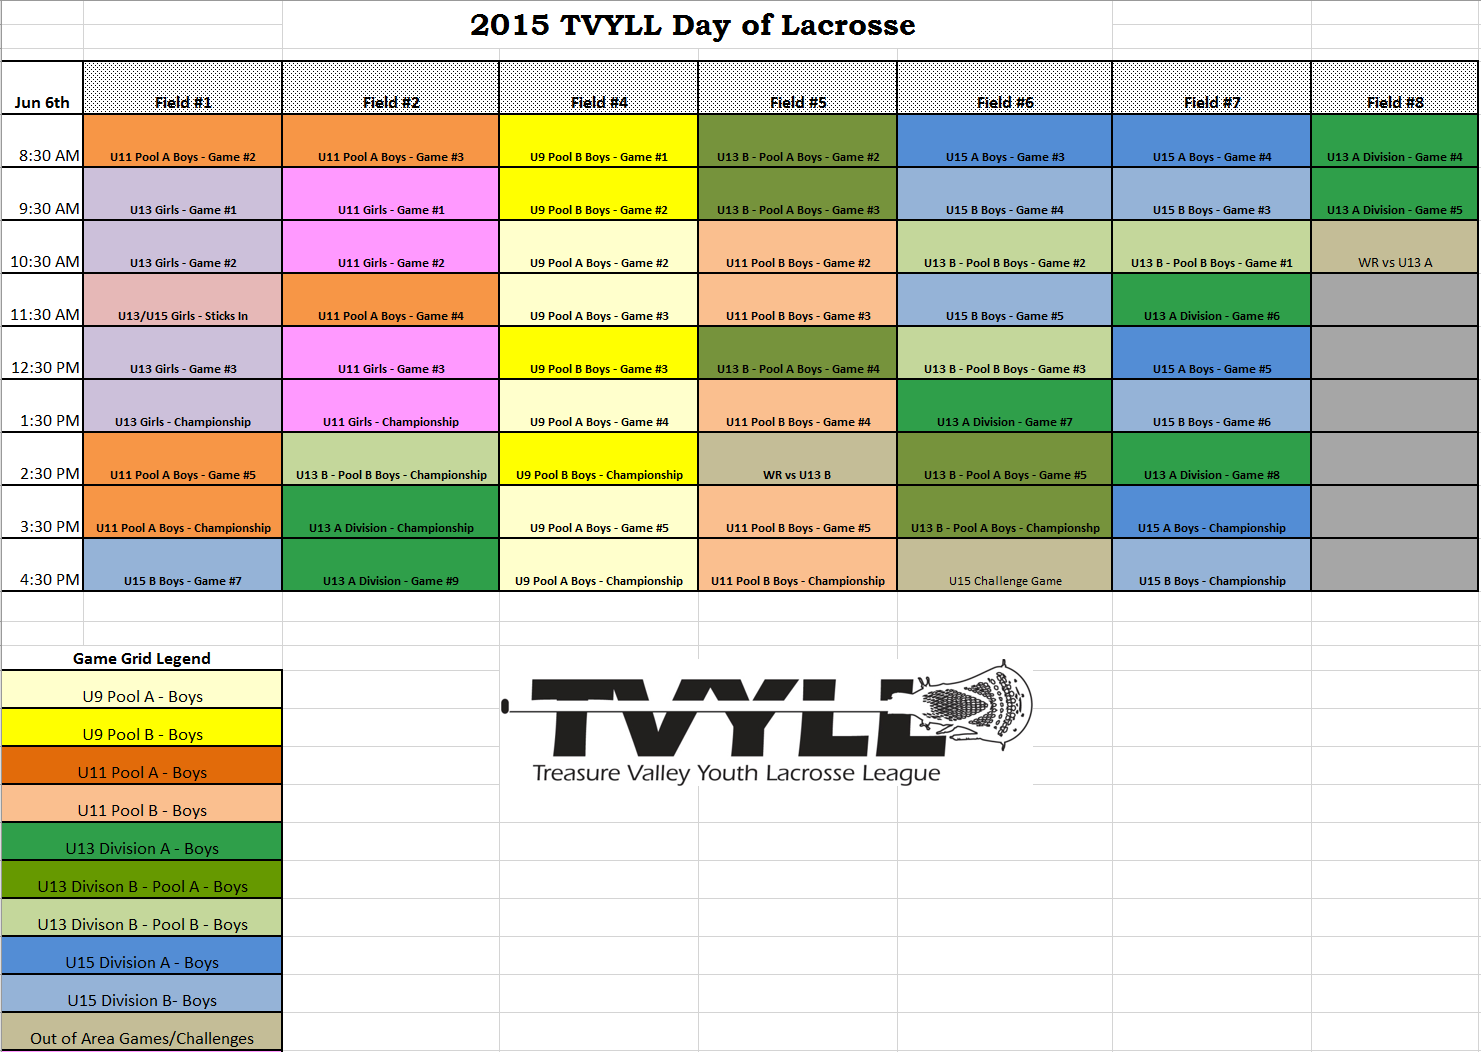 2015 TVYLL Day of Lacrosse Schedule